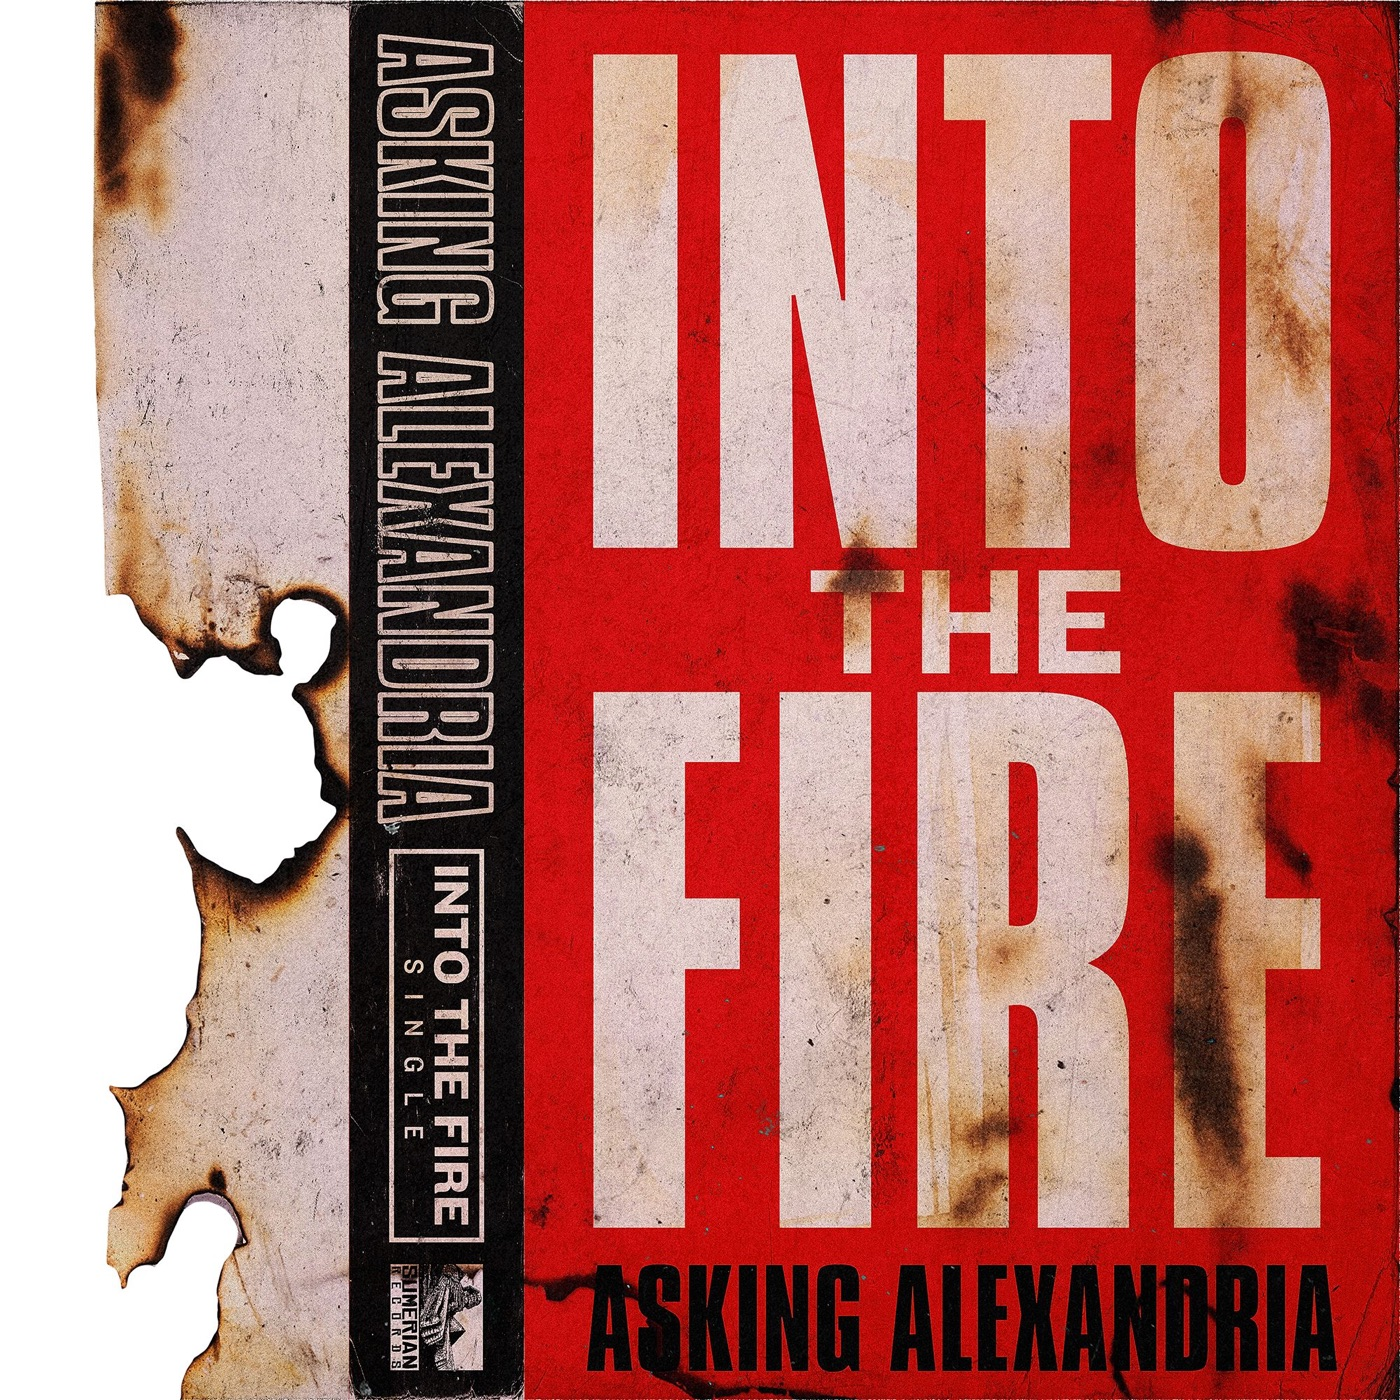 Asking Alexandria - Into The Fire (Single)